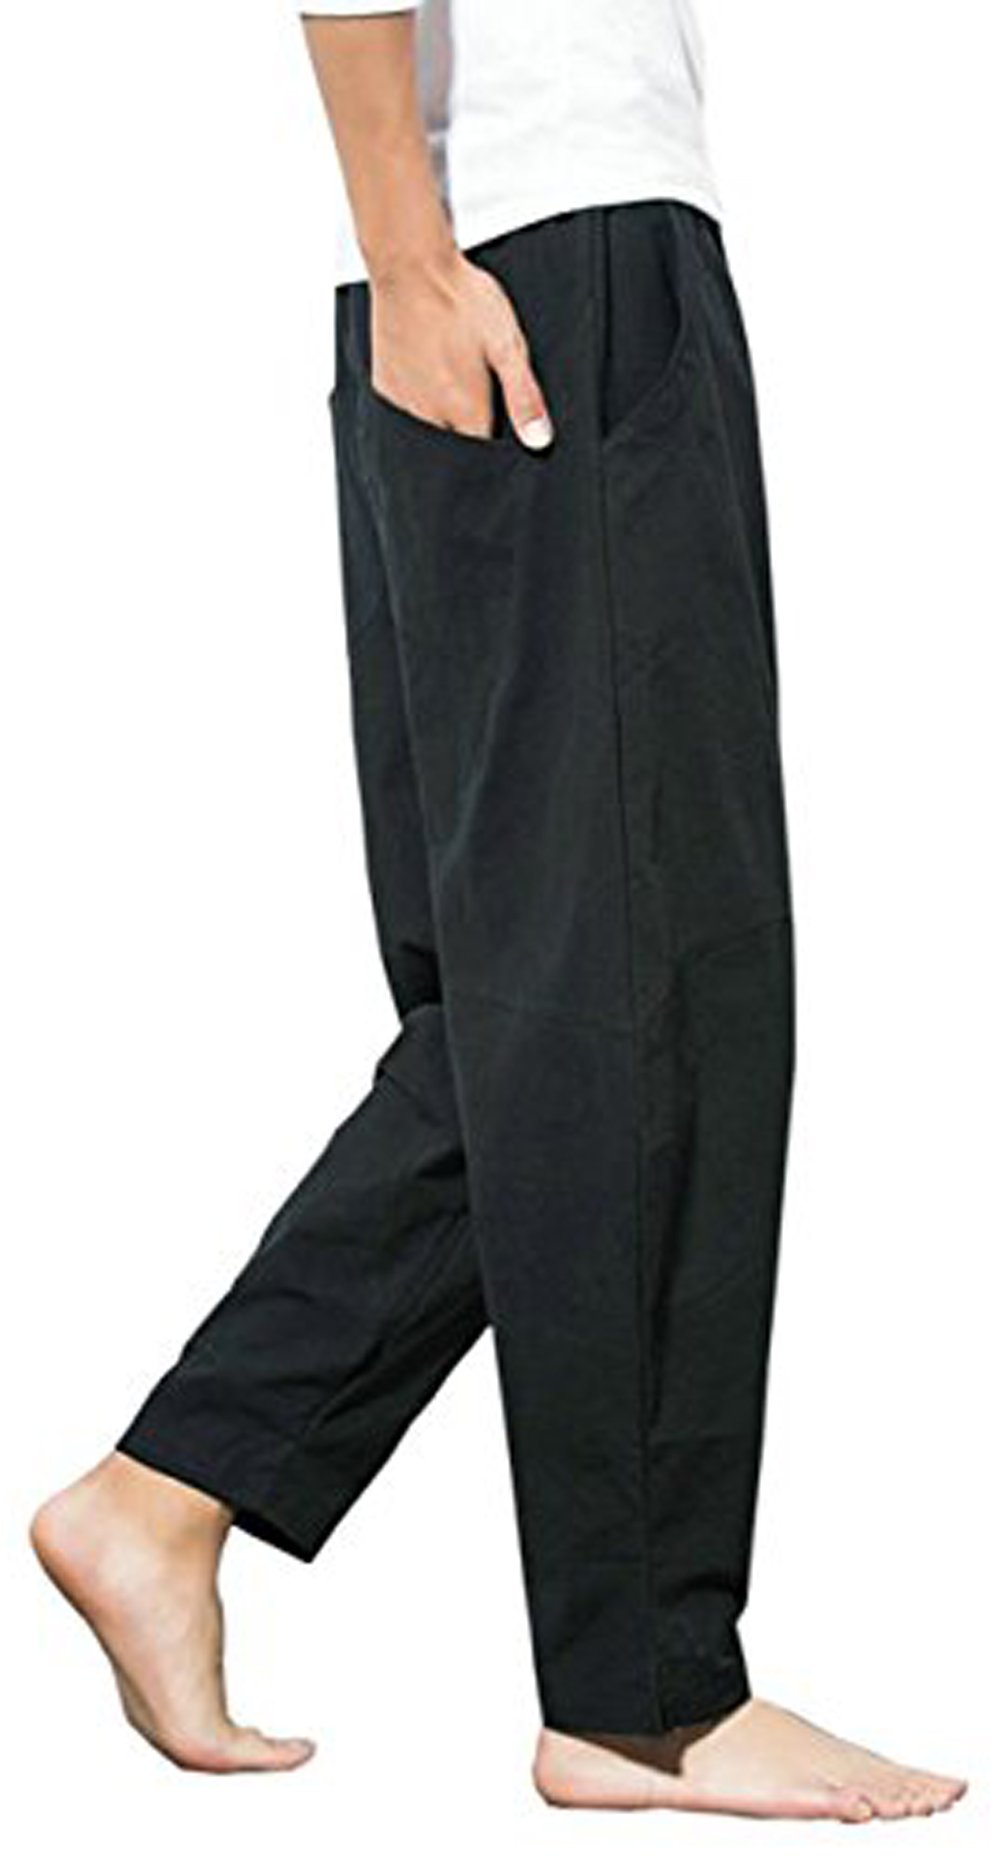 Thrivqyaf Men's Summer Casual Baggy Drawstring Cotton Beach Harem Pants Trousers (US M = Asian 2XL Waist:33''-34'', Black) by Thrivqyaf (Image #4)